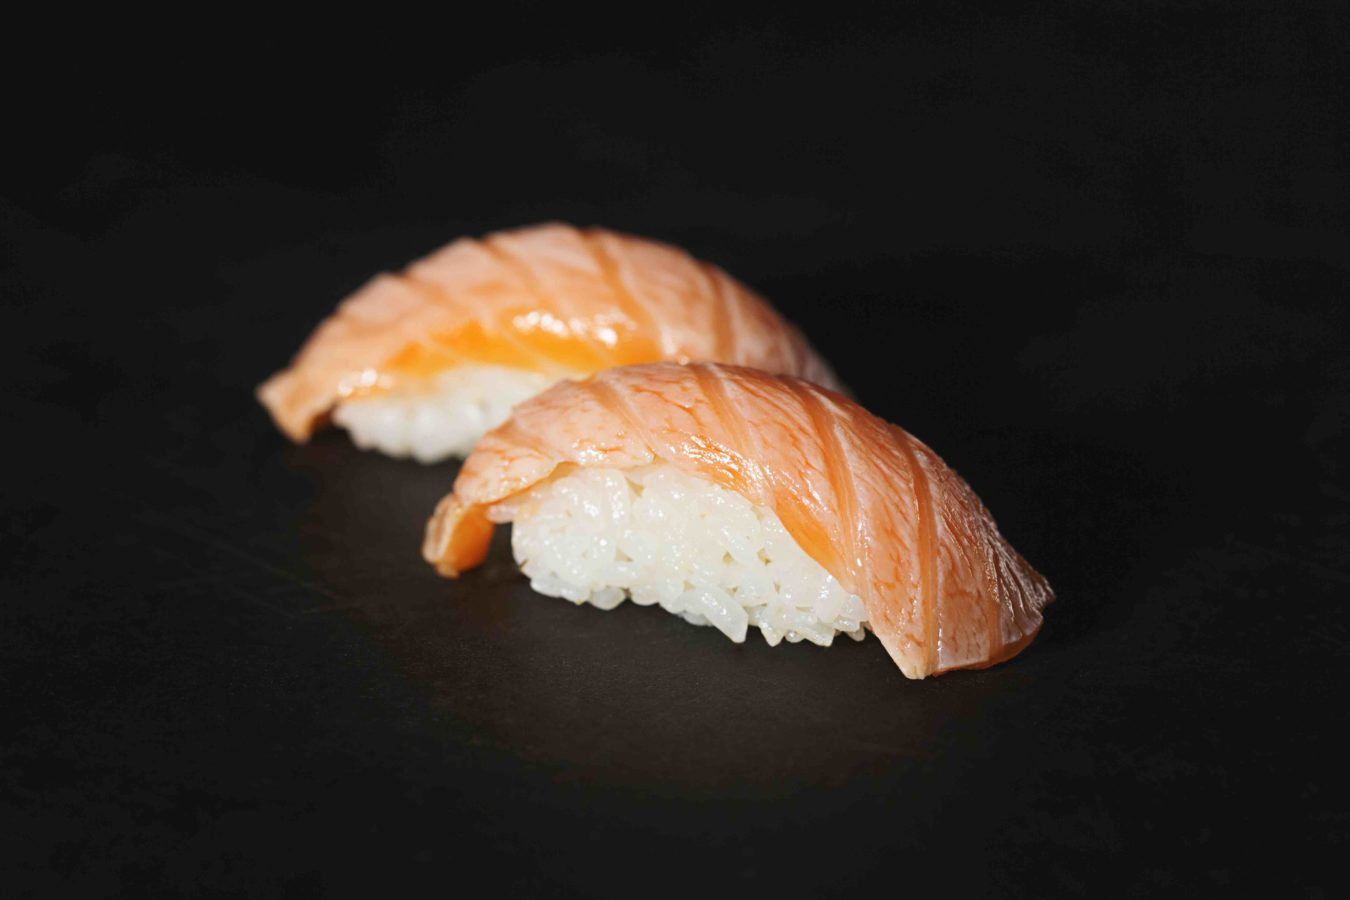 Lab-grown salmon paves the way to reduce overfishing